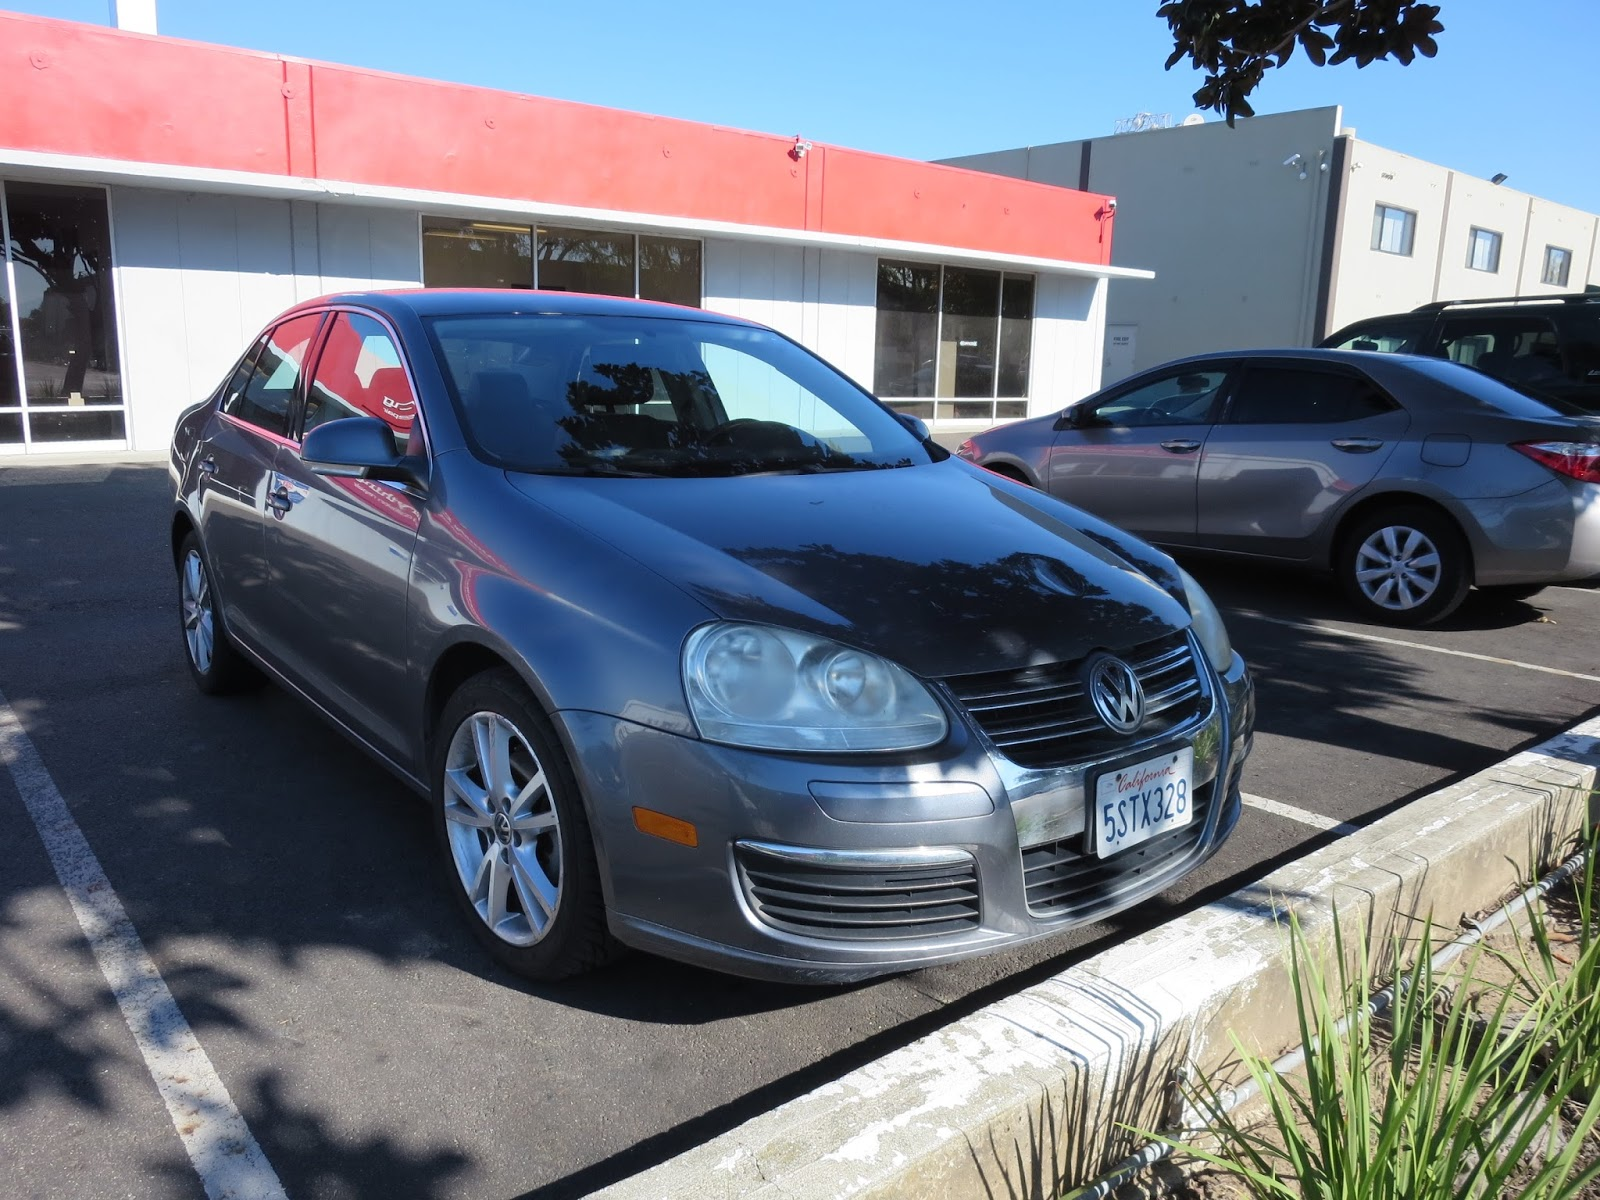 image htm background maintenance audi auto sacramento body index home page volkswagen repair featured